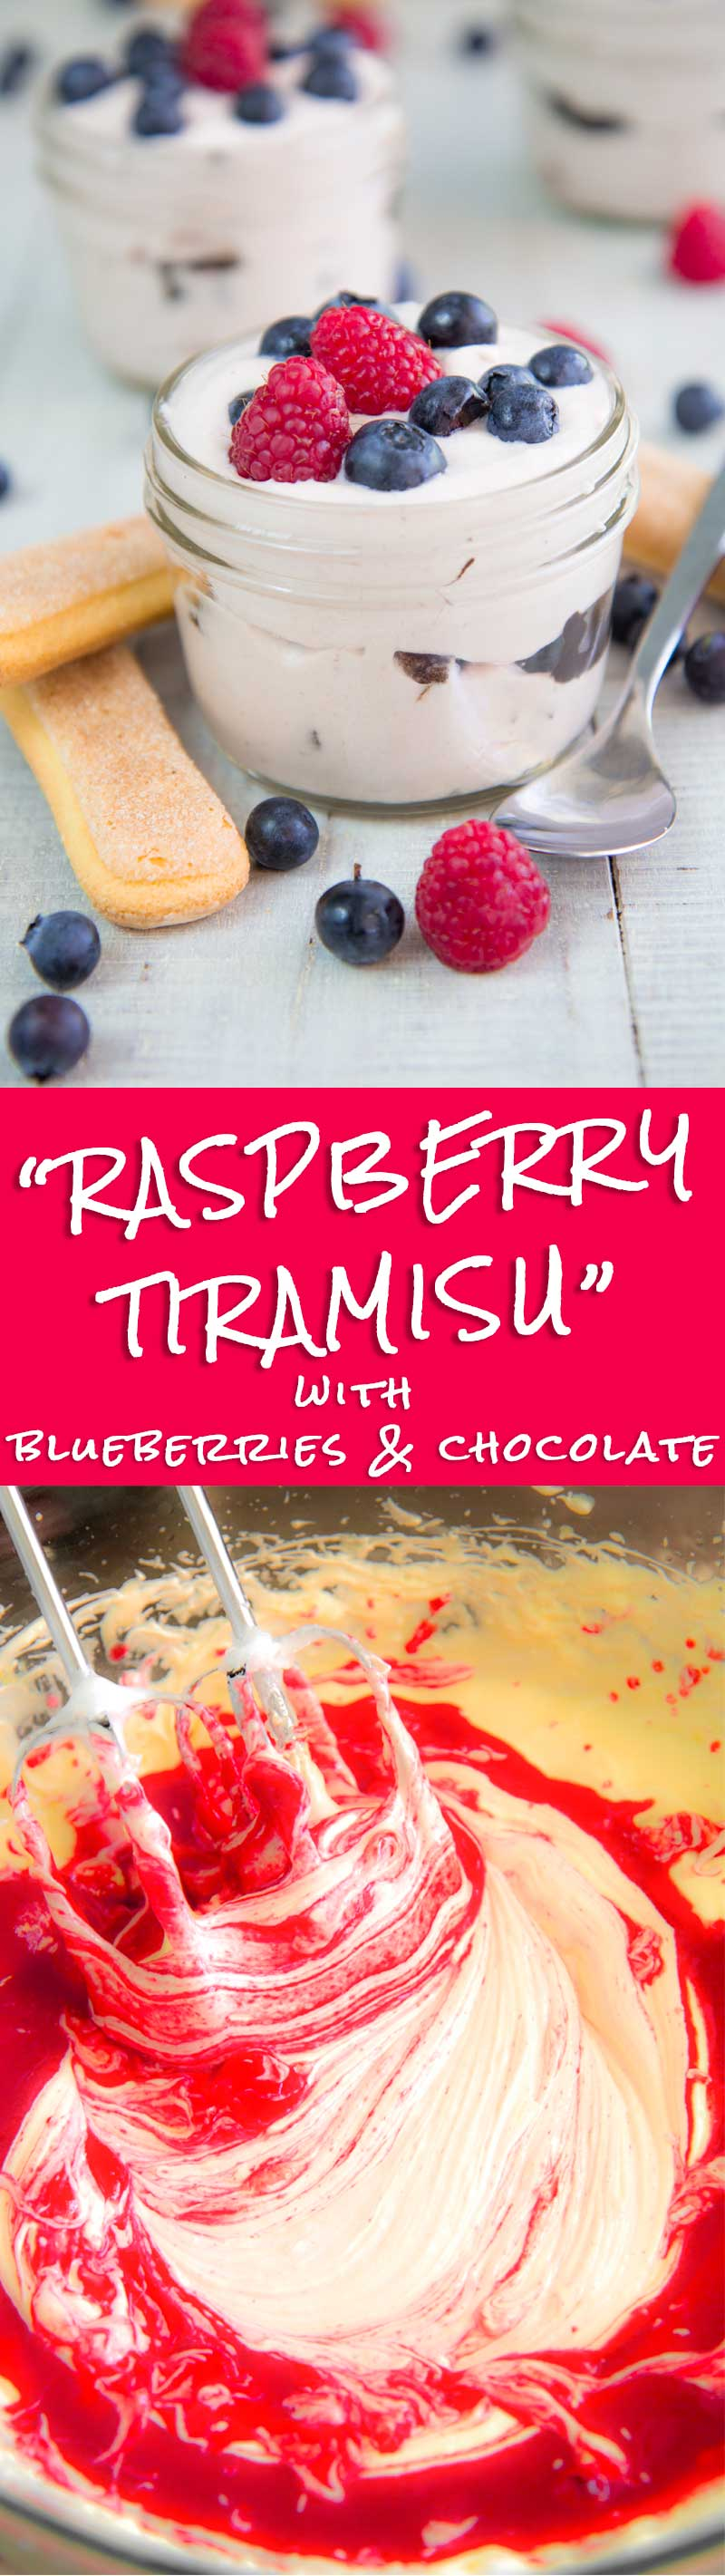 RASPBERRY TIRAMISU with blueberries and chocolate chunks